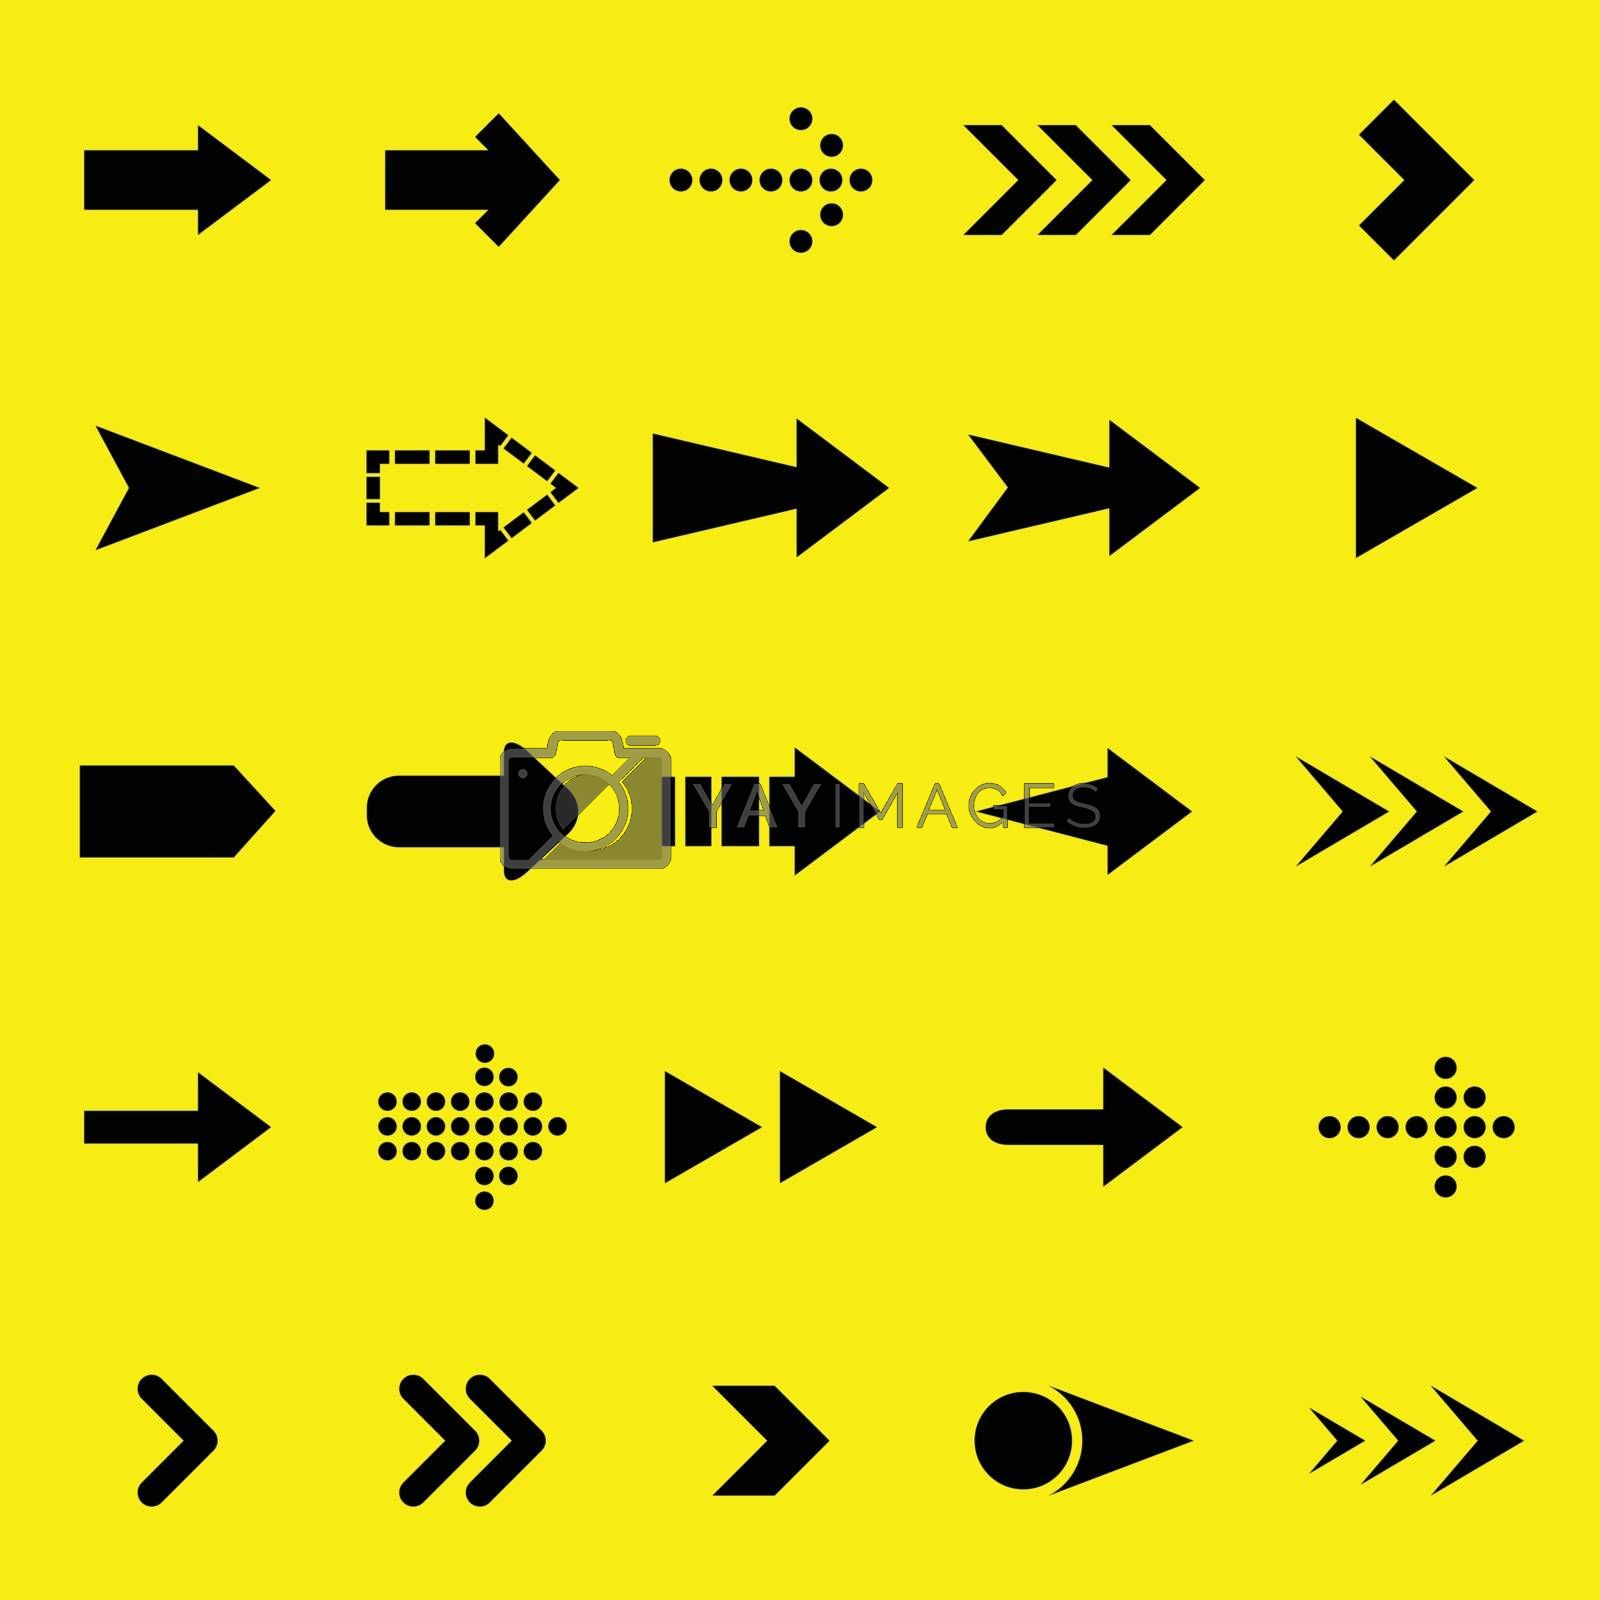 Arrow black icons on yellow background by punsayaporn